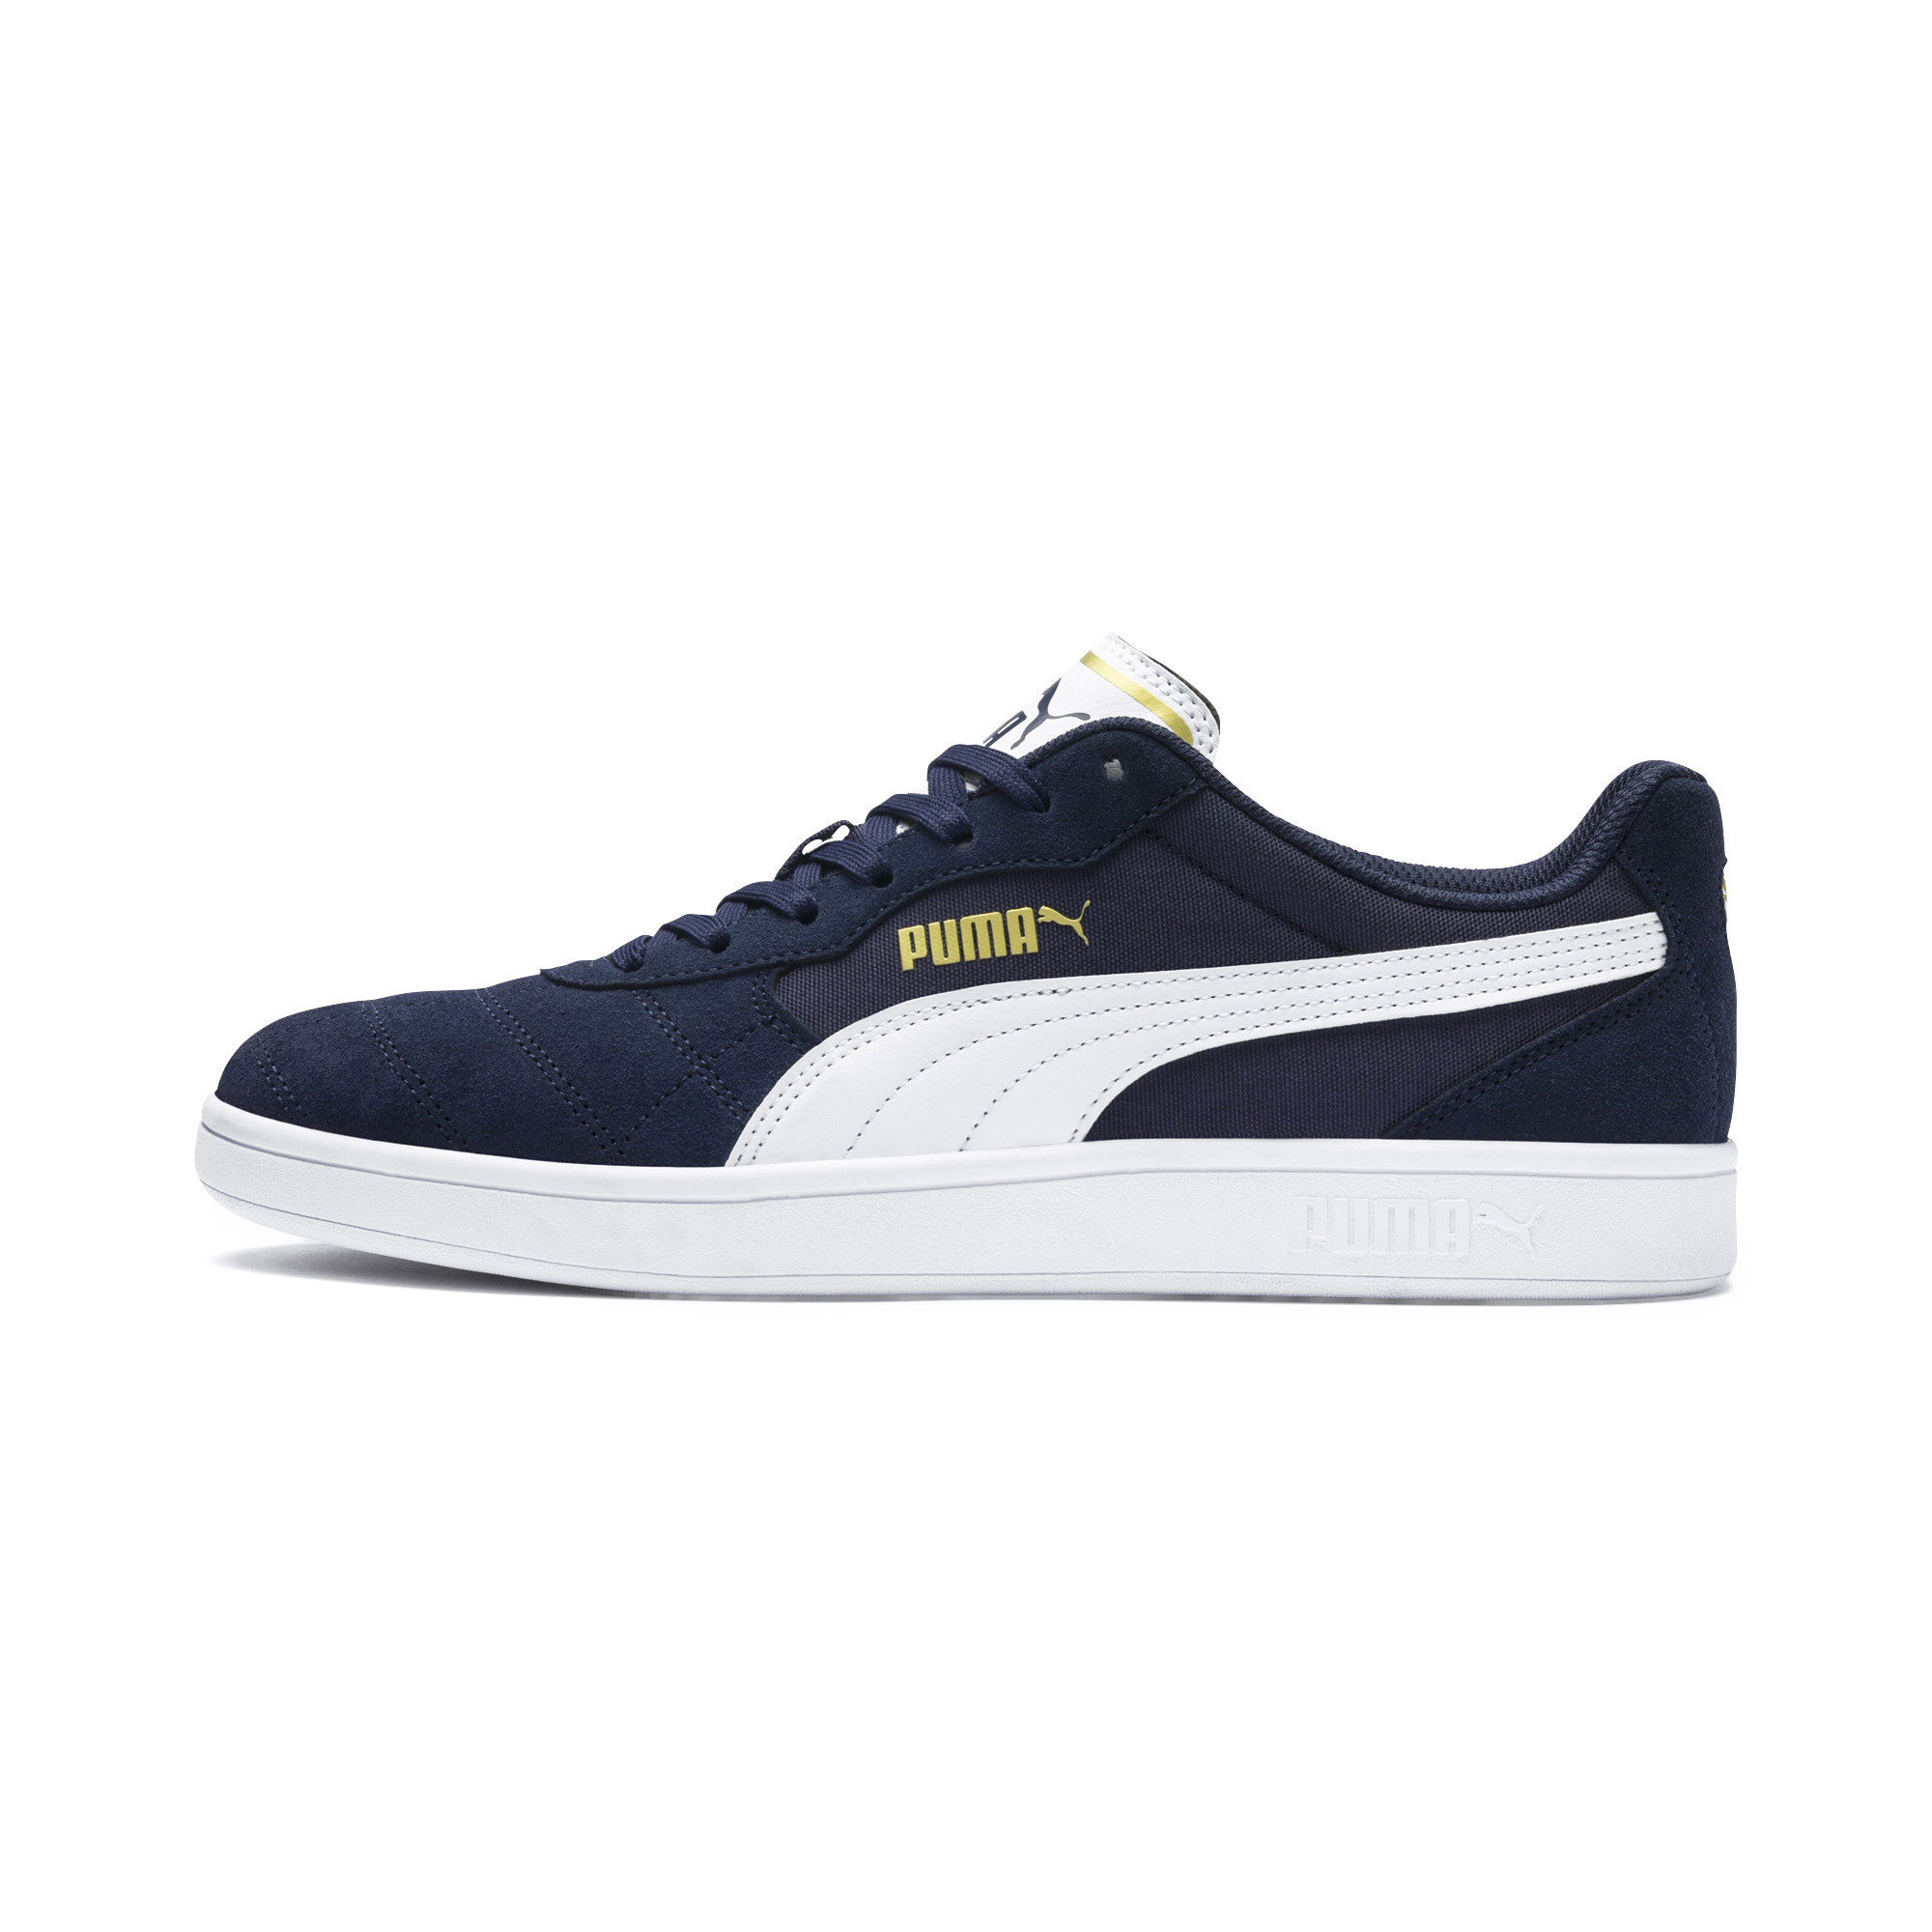 PUMA-Astro-Kick-Men-039-s-Sneakers-Men-Shoe-Basics thumbnail 19